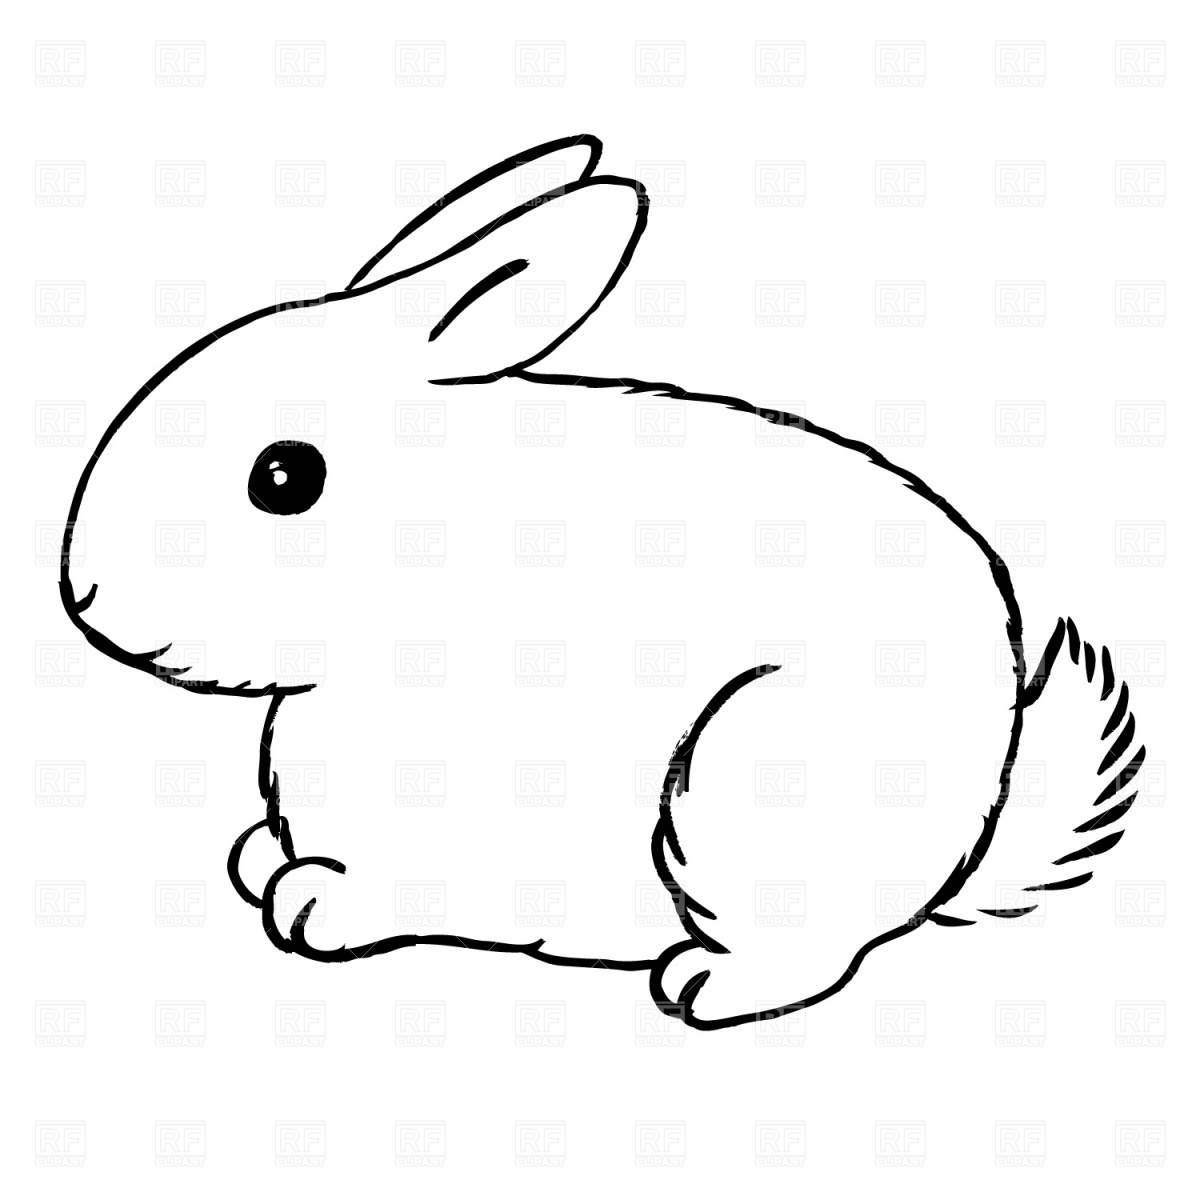 rabbit face clipart-rabbit face clipart-8